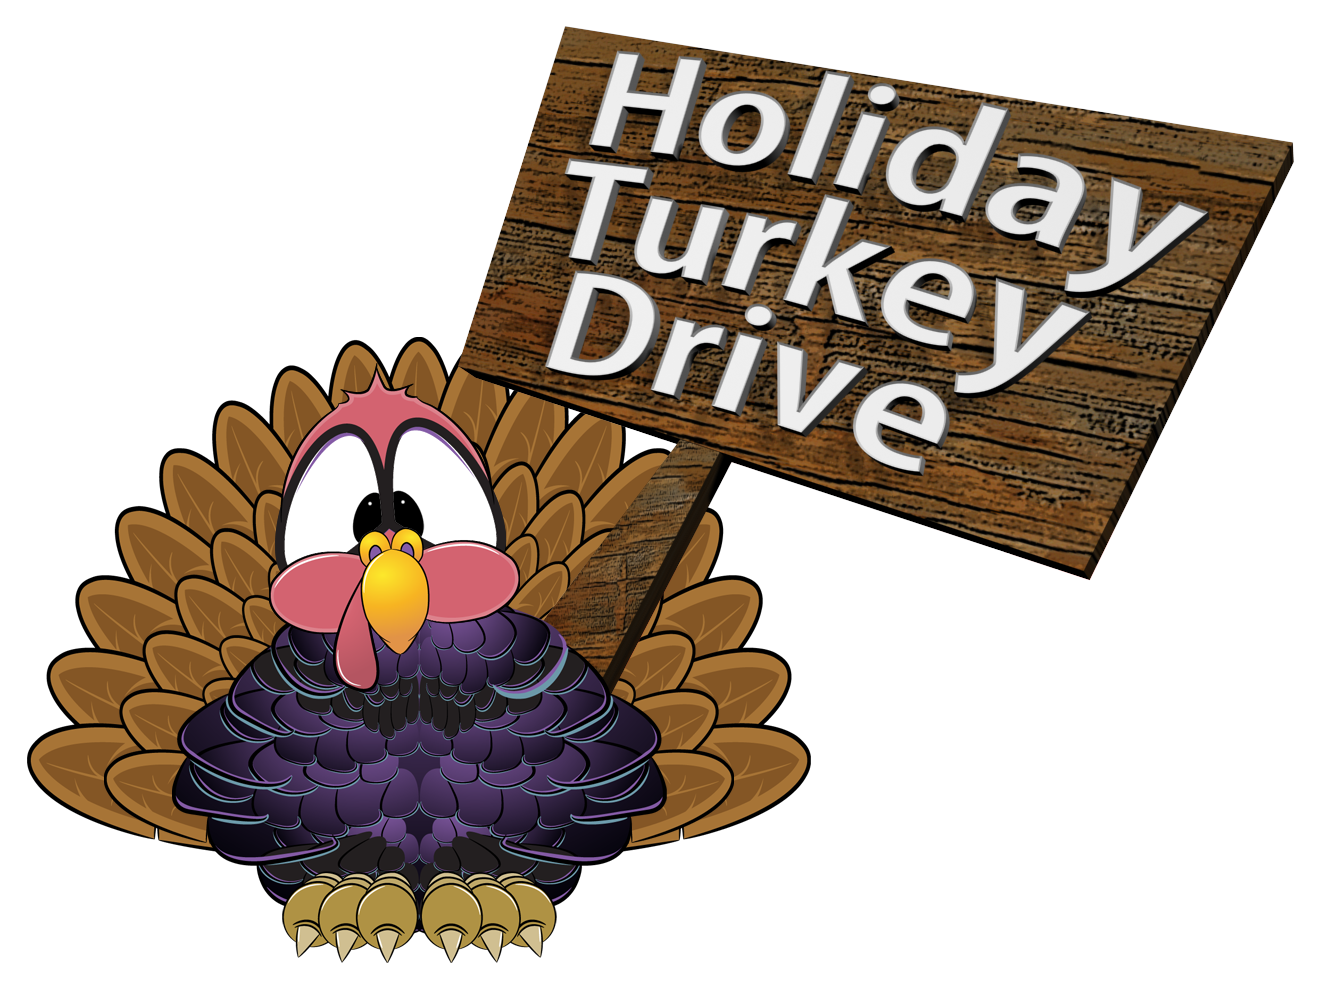 HOLIDAY TURKEY DRIVE logo